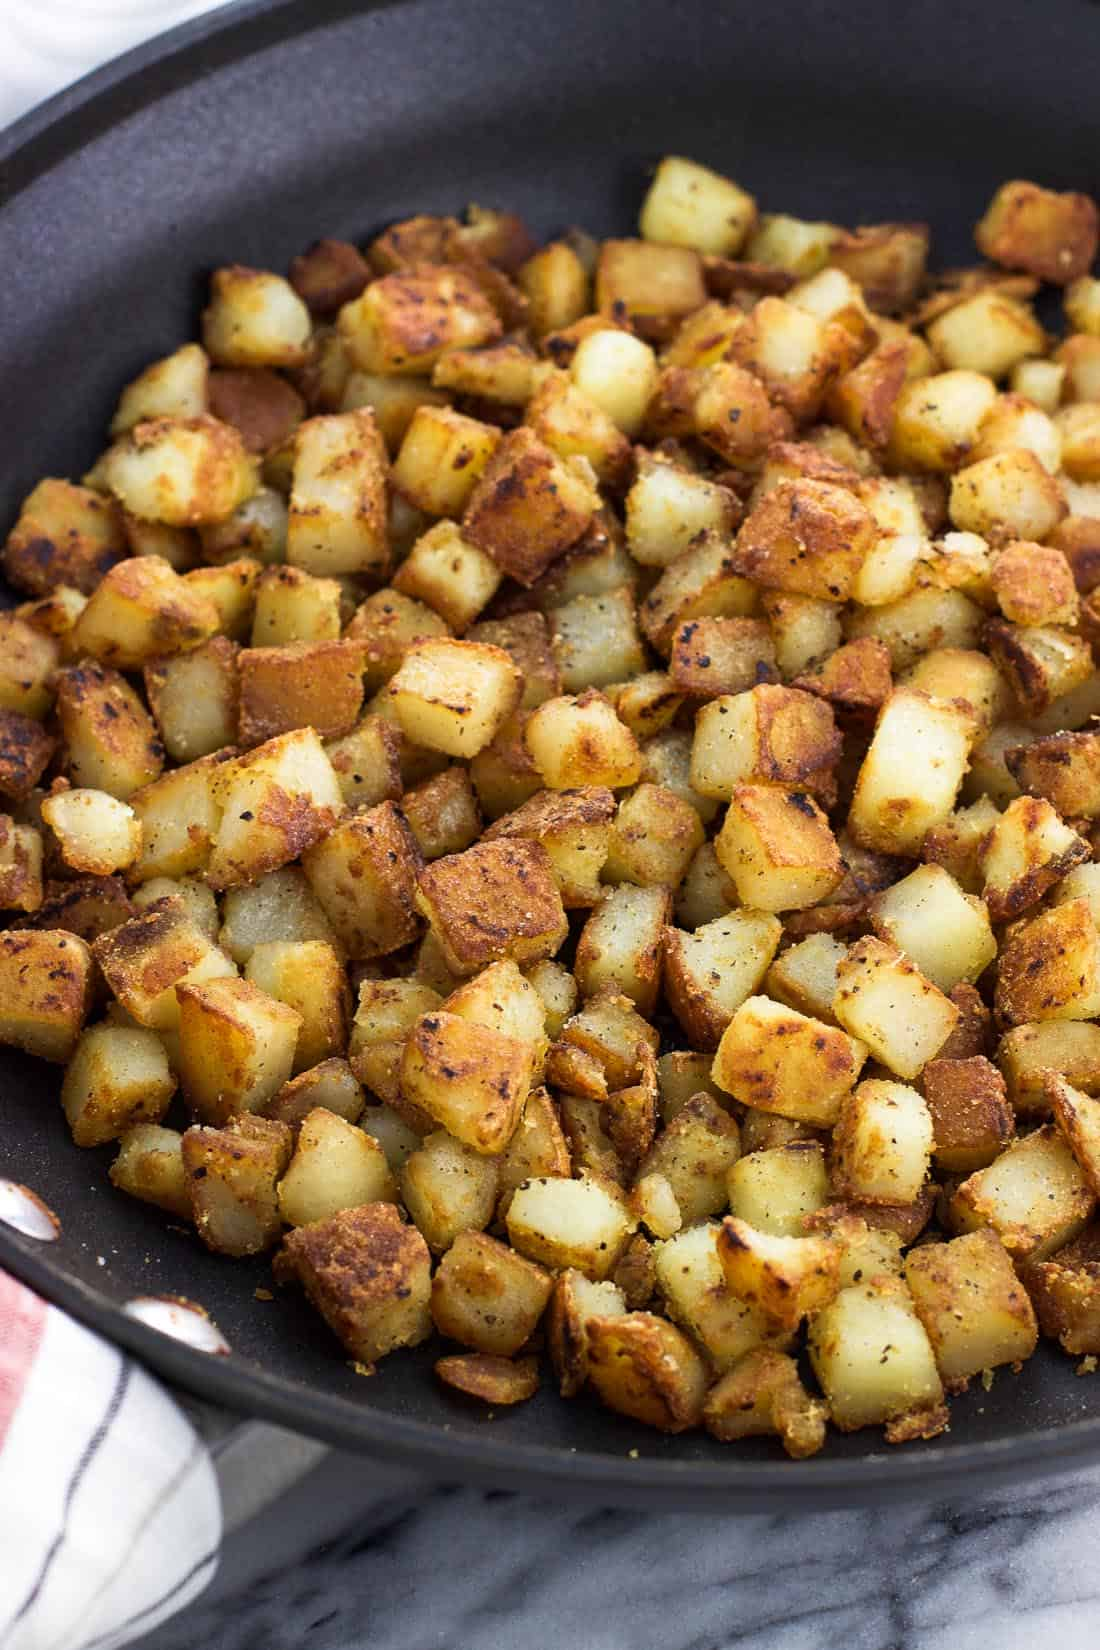 Cubed and sauteed potatoes in a skillet